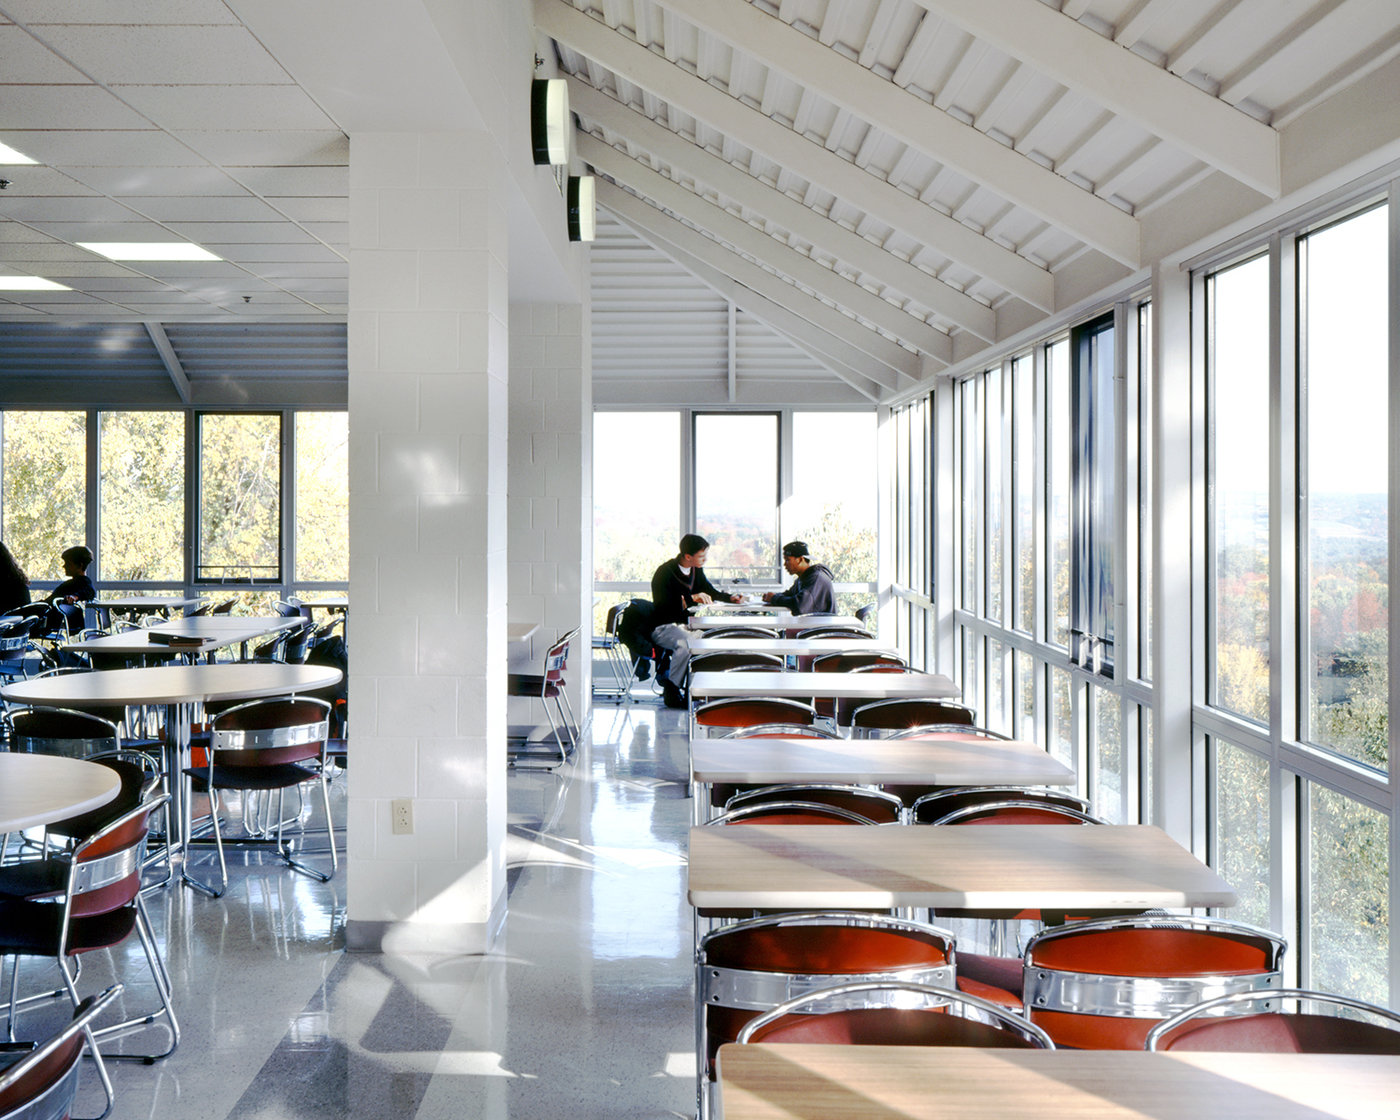 10 tskp woodstock academy master plan expansion interior detail cafeteria 1400 0x0x1500x1200 q85